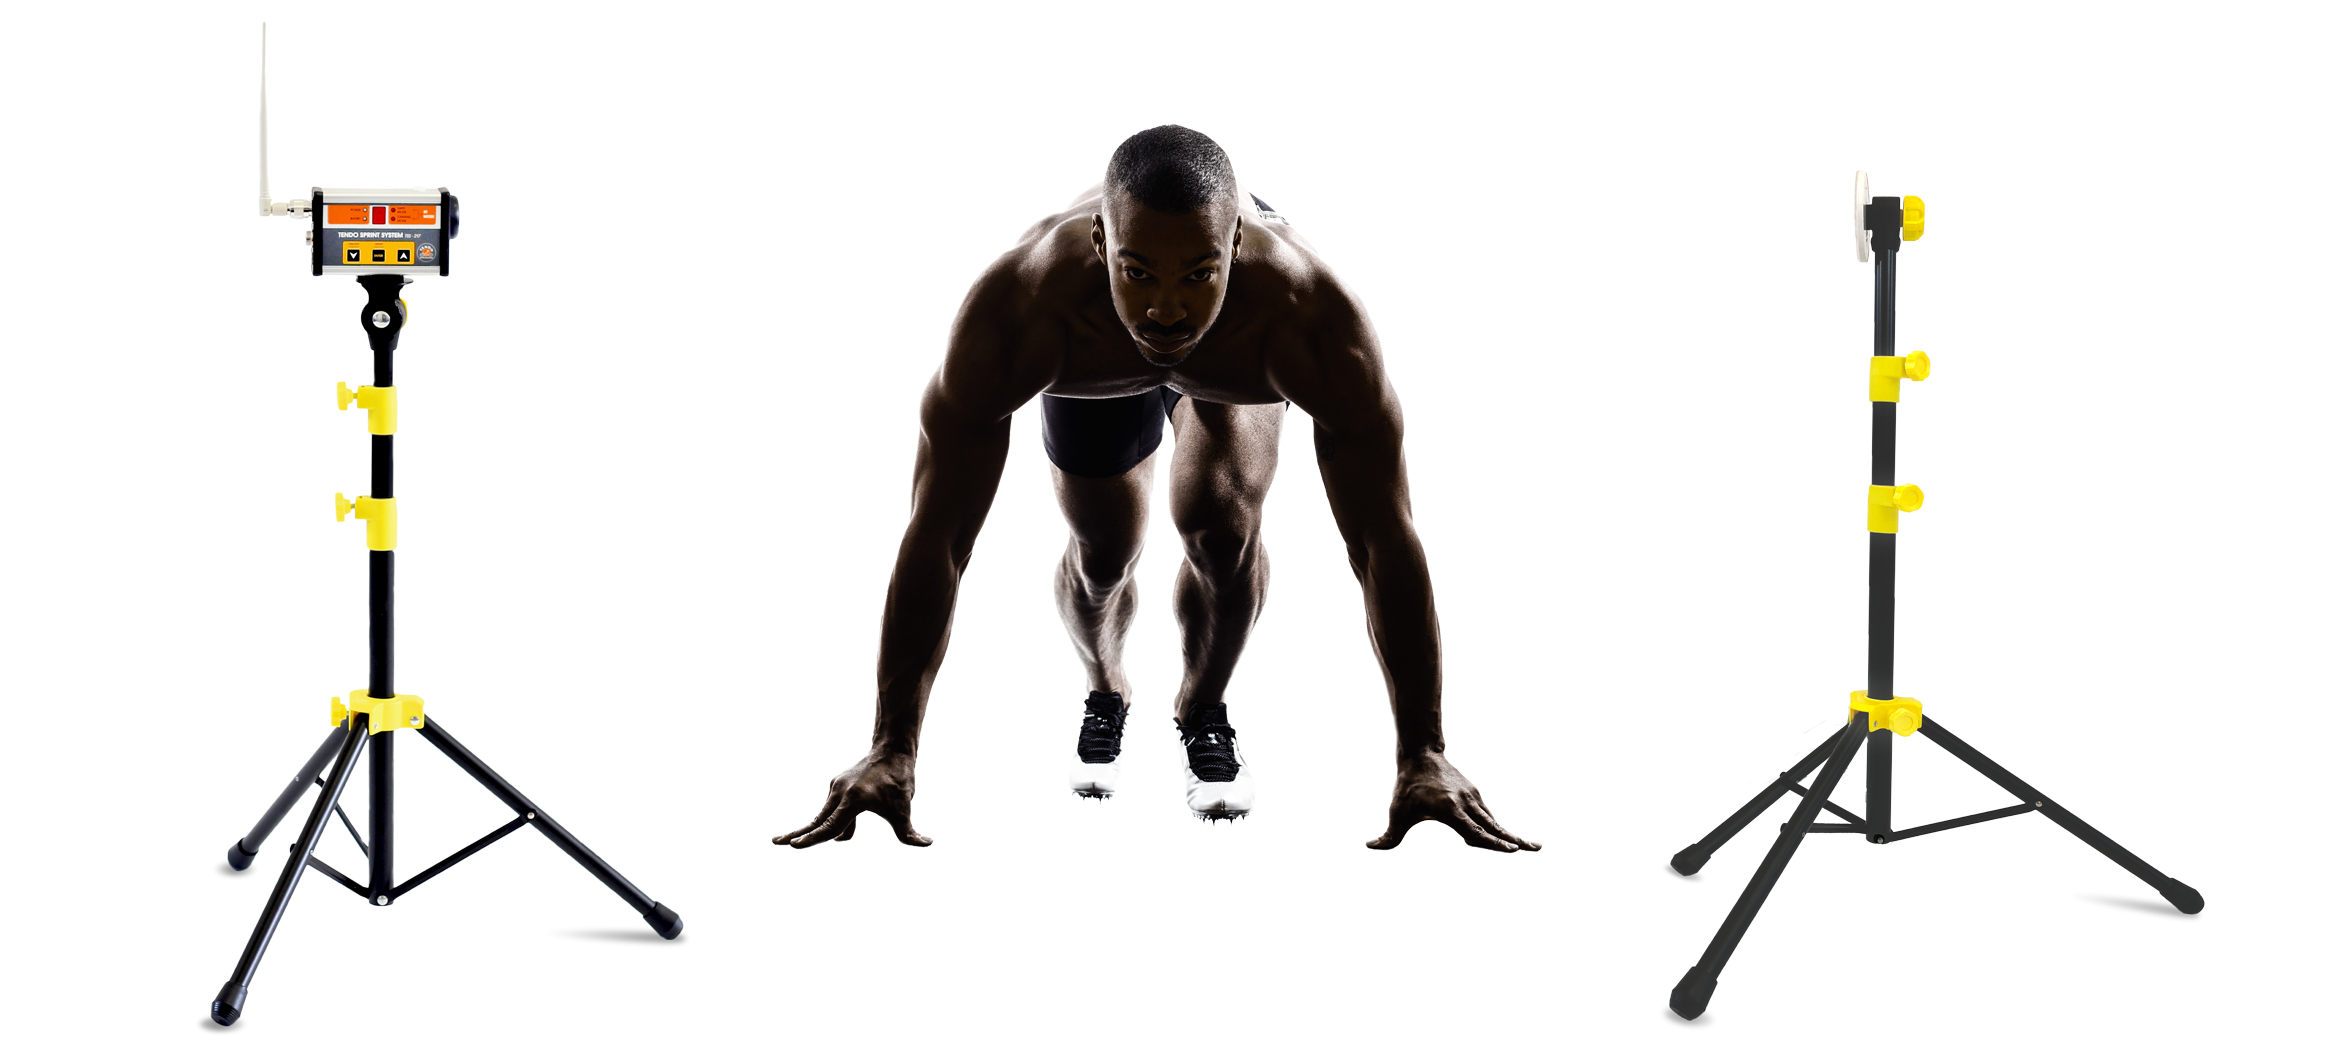 An athlete in starting position ready to sprint standing in between Tendo Sprint System photocell and reflector by Tendo Sport